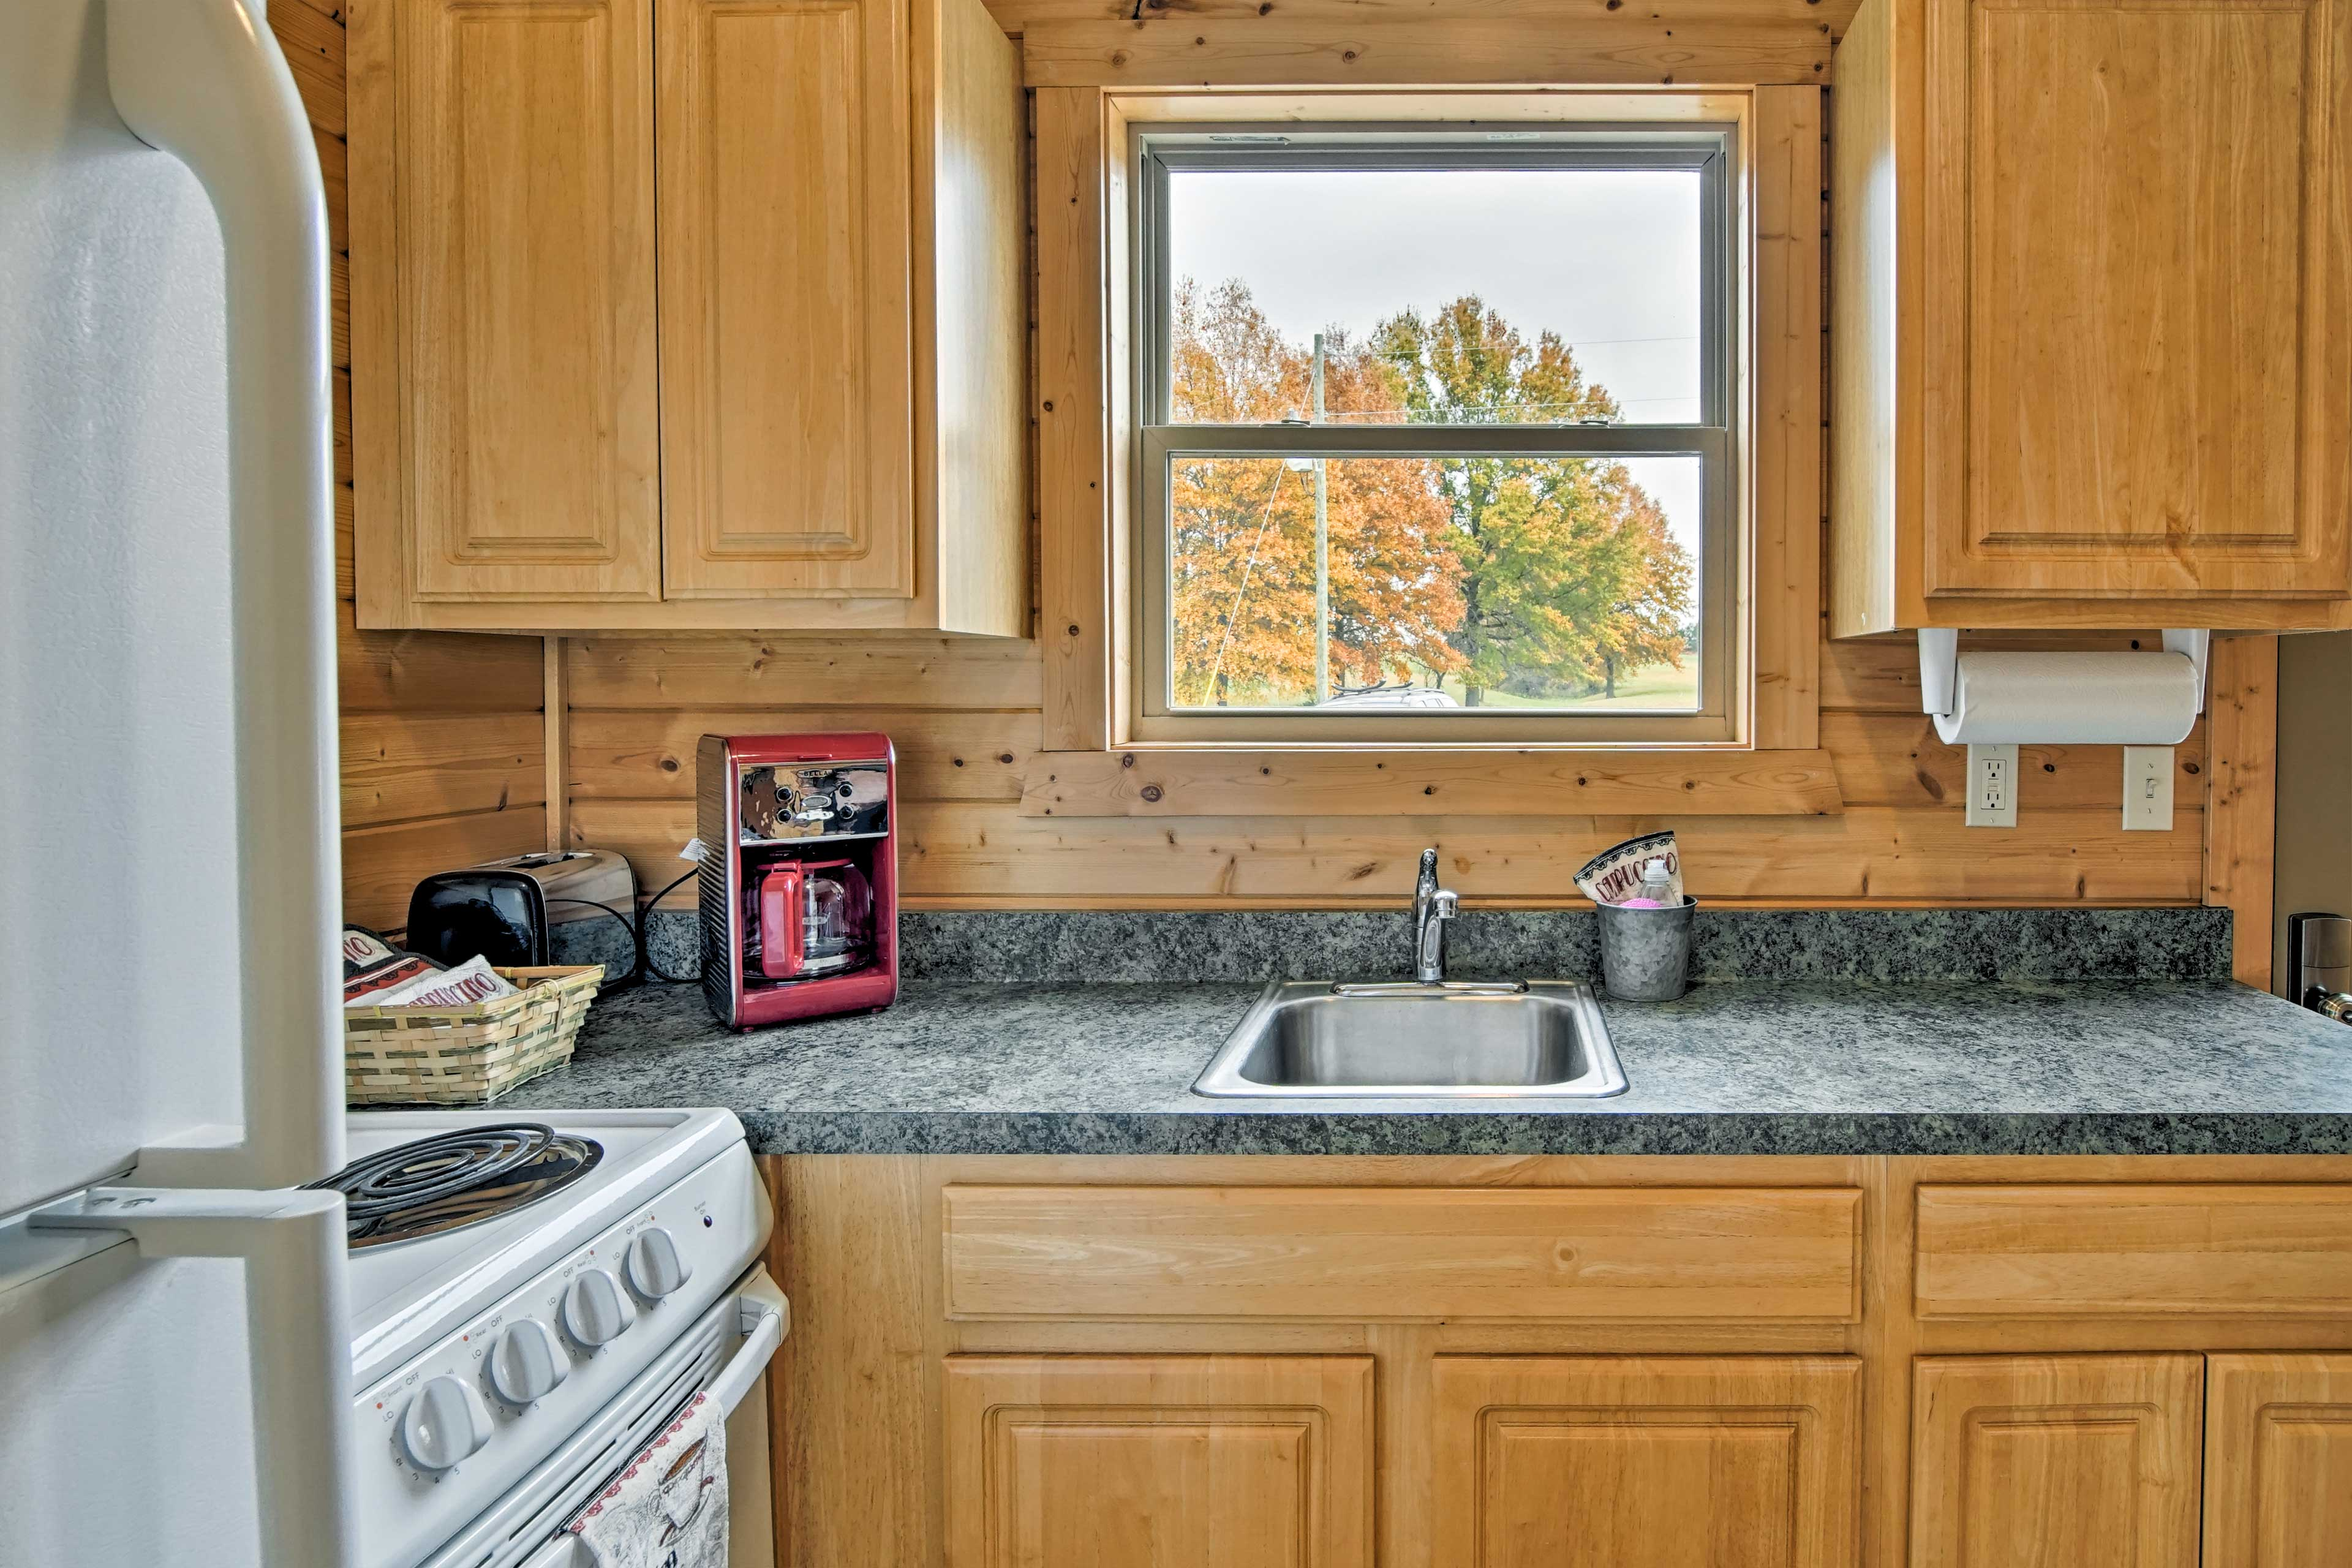 Look out onto beautiful scenery while doing the dishes in the kitchen.